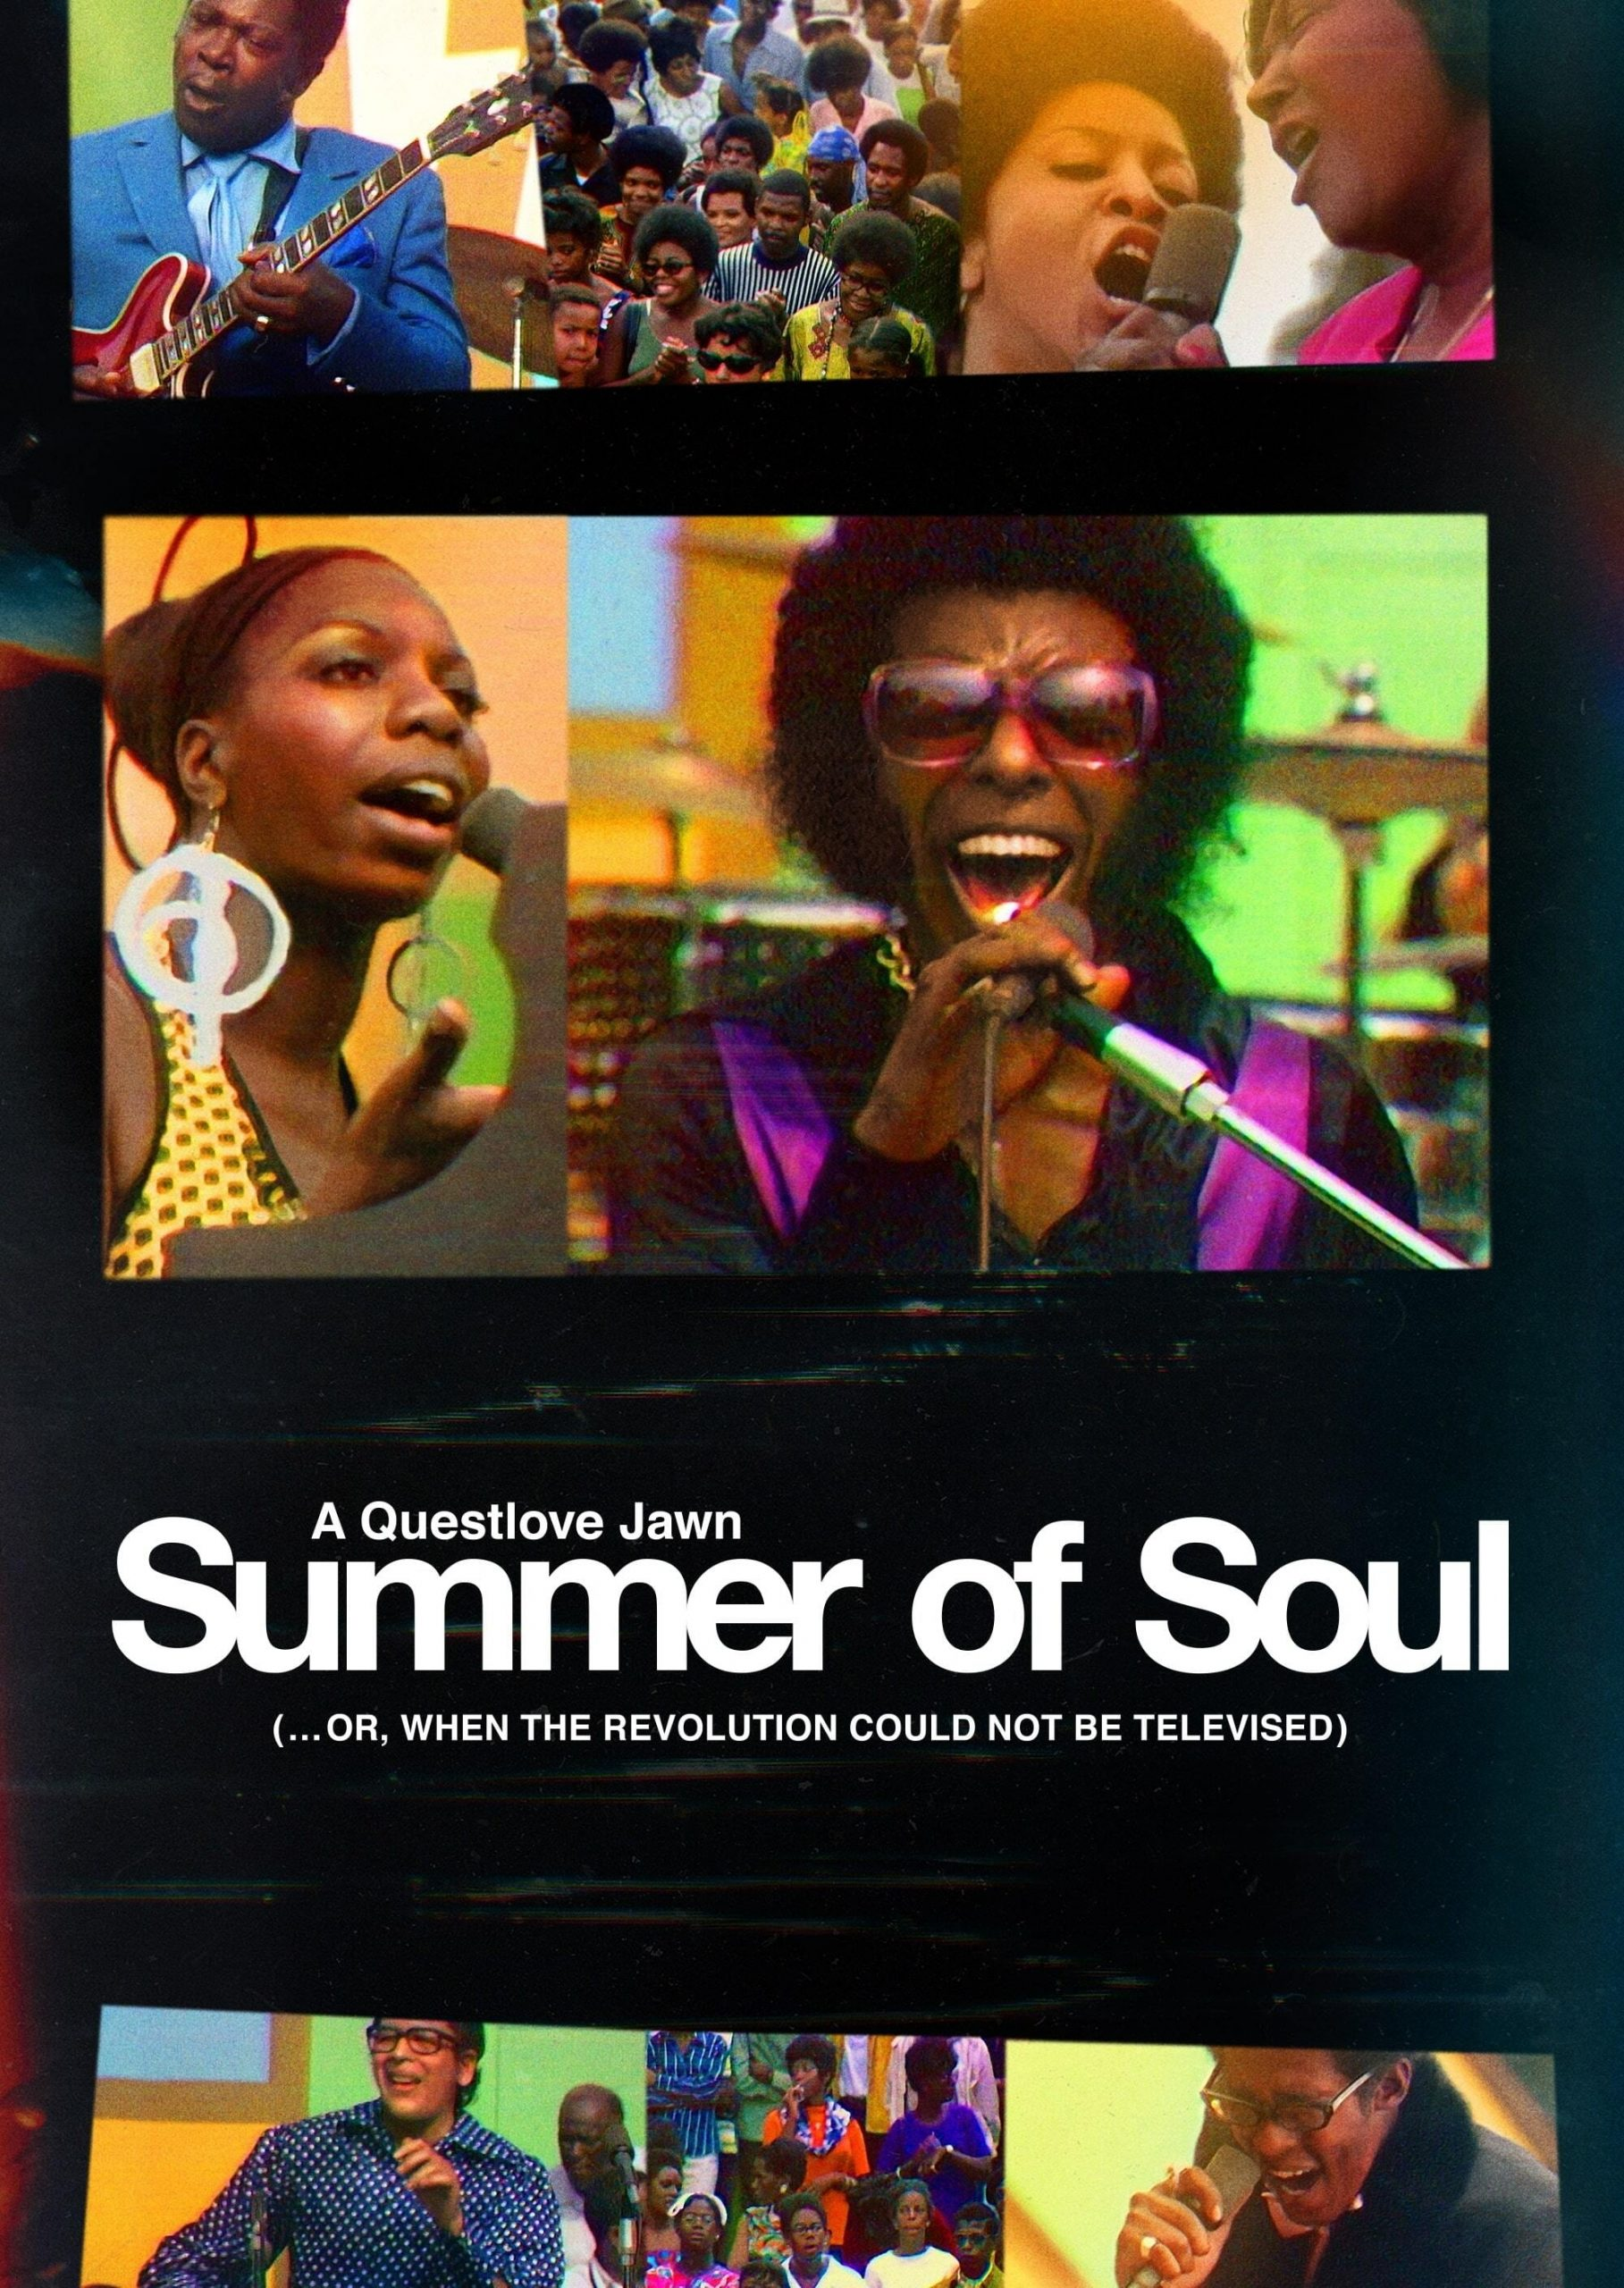 Poster for Summer of Soul (…or, When the Revolution Could Not Be Televised)